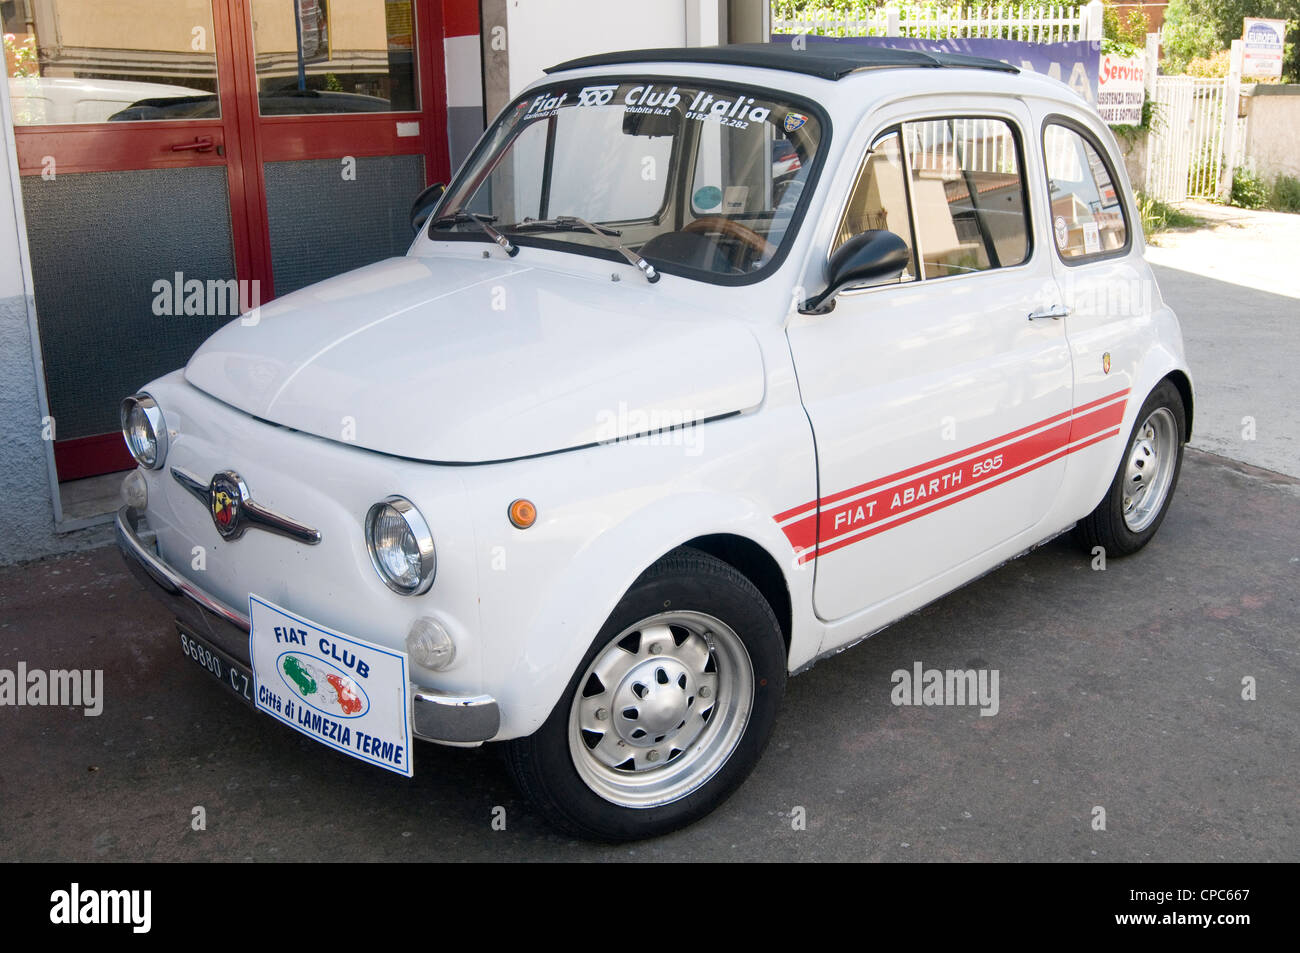 fiat 500 classic small car cars italy italian small peoples - Stock Image